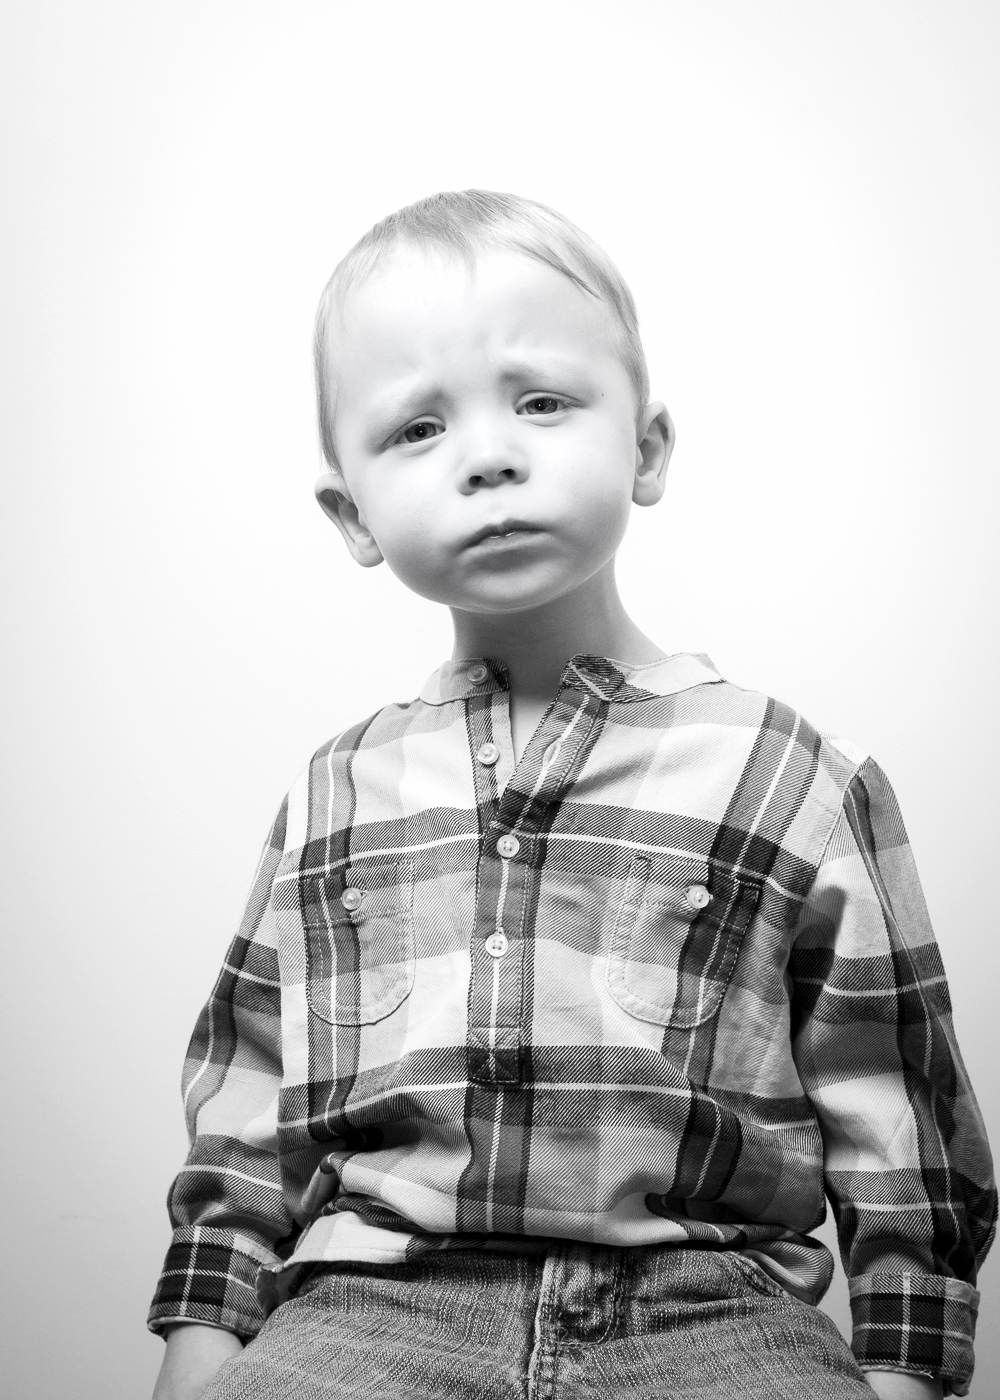 Child studio portrait photography - B&W